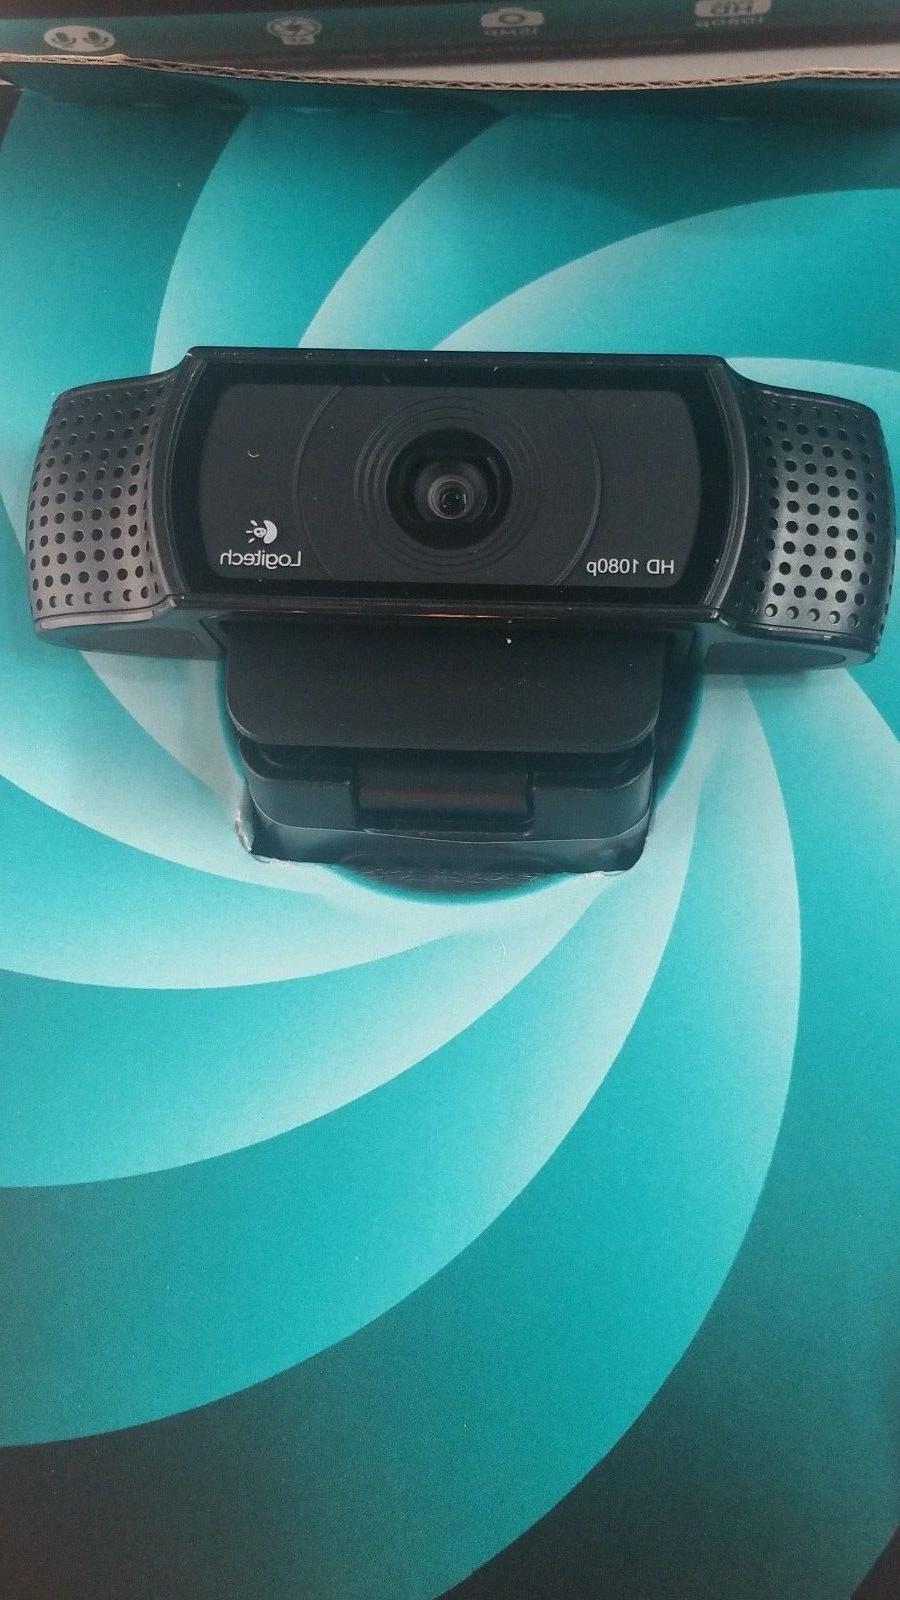 New Logitech Webcam C920 Calling & Recording